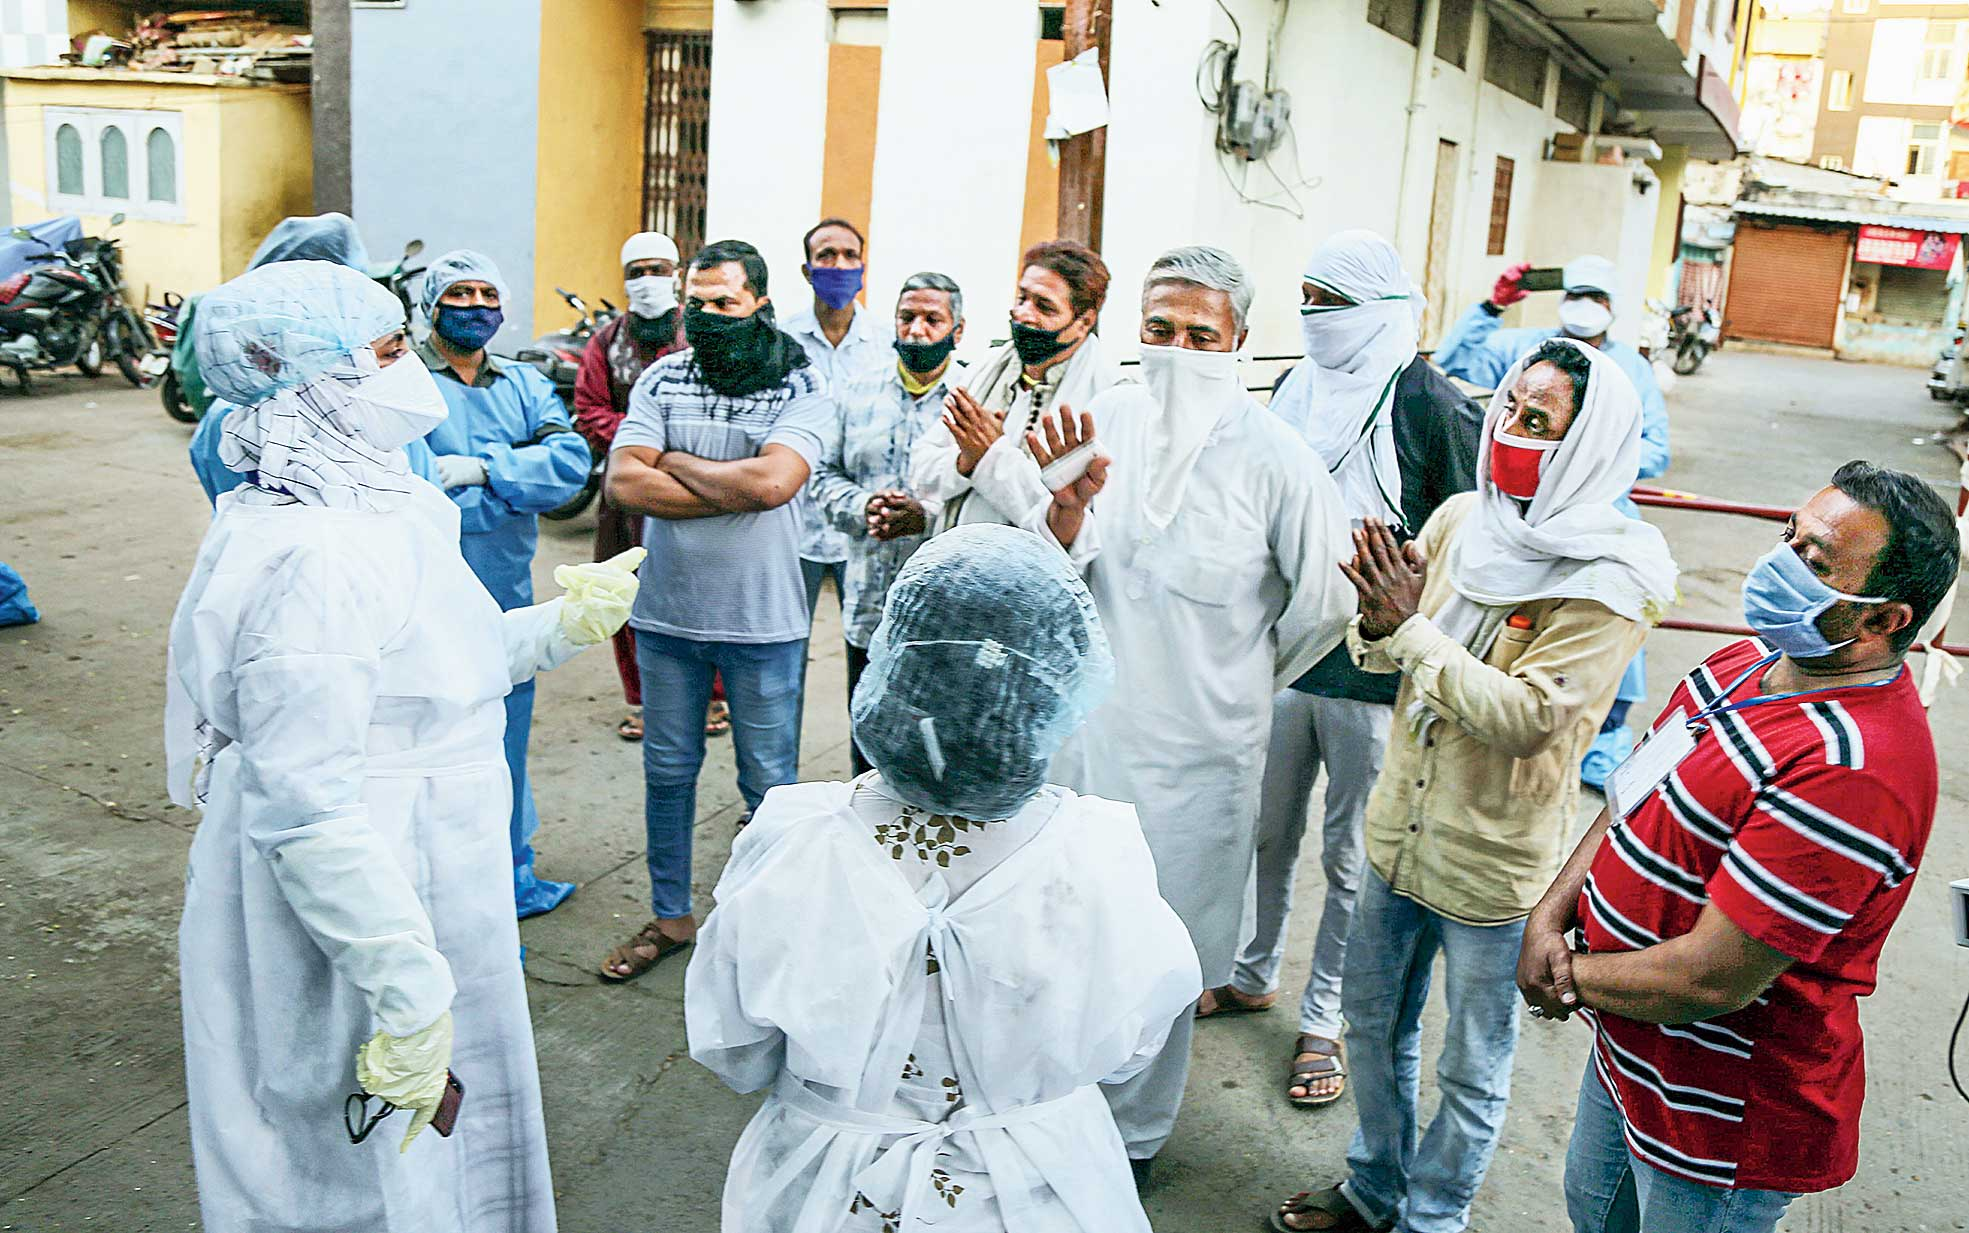 Residents of Taatpatti Bakhal in Indore apologise to a team of doctors on Thursday, a day after health workers were attacked when they went there to quarantine relatives of a Covid-19 patient. Seven suspected attackers have been arrested.